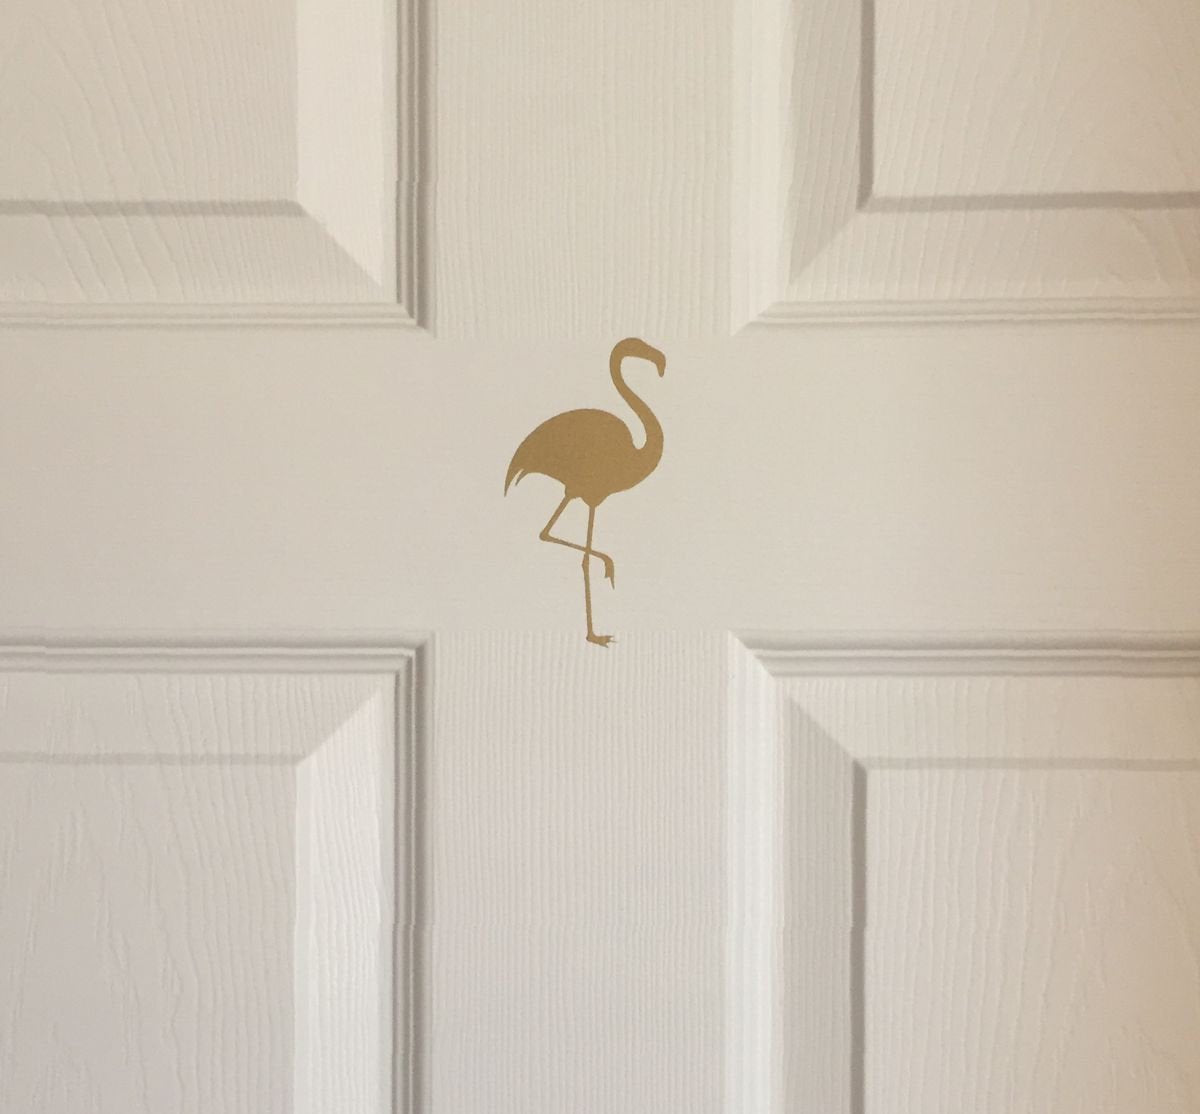 Flamingo Decor for Home | Gold Flamingo Door Decal | Set of 7 Flamingo Sticker Decals